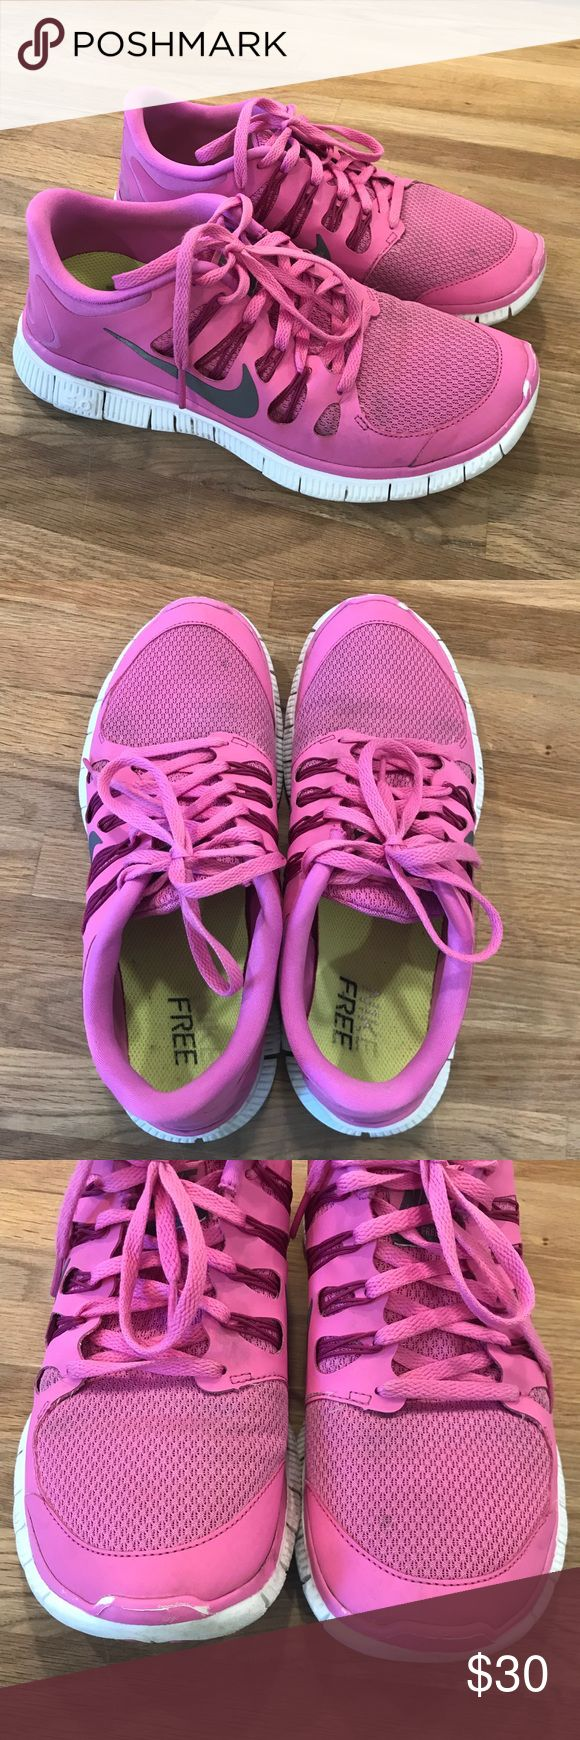 Nike Free 5.0 Sneakers Size 10 Women's Nike Free 5.0 sneakers. Size 10. Bubble gum pink and white! Fair condition because they show signs of wear. Please see photos. Priced accordingly. No box. Worn but still super cute on! No trades.   PRICE IS FIRM! Thank you! Nike Shoes Sneakers